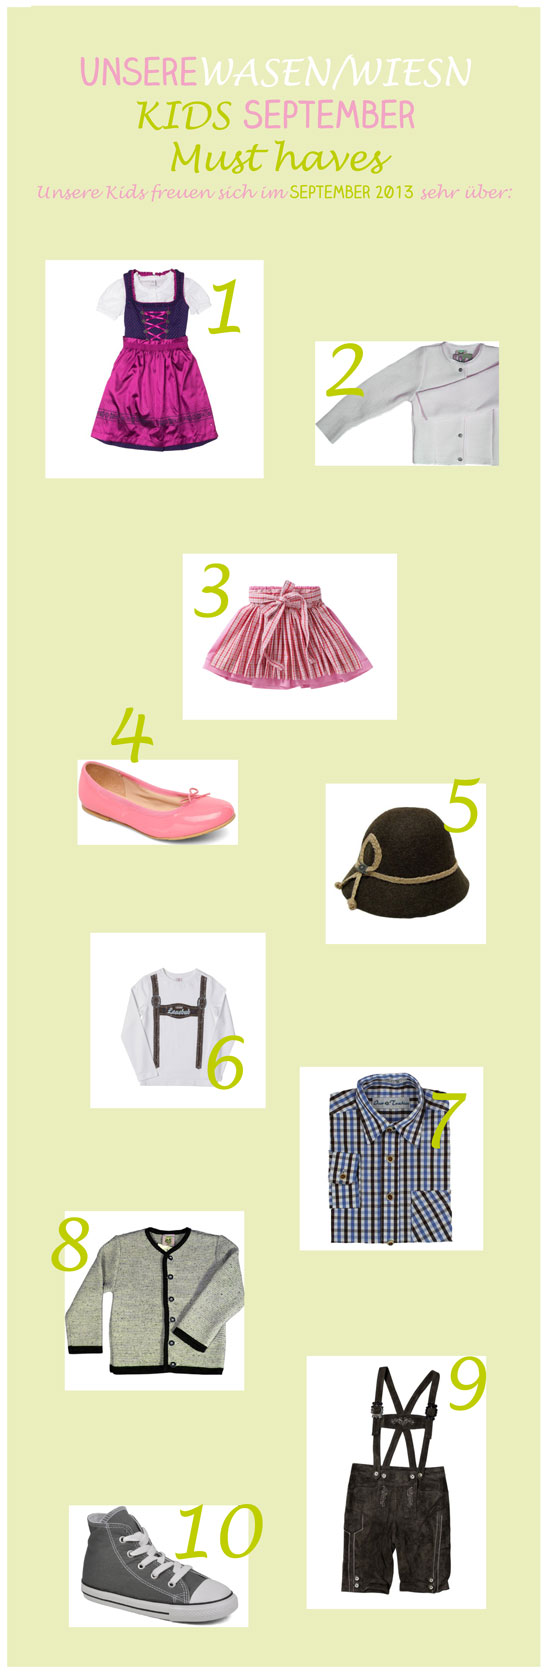 Must-haves-September-Wasen-Wiesn-Kids